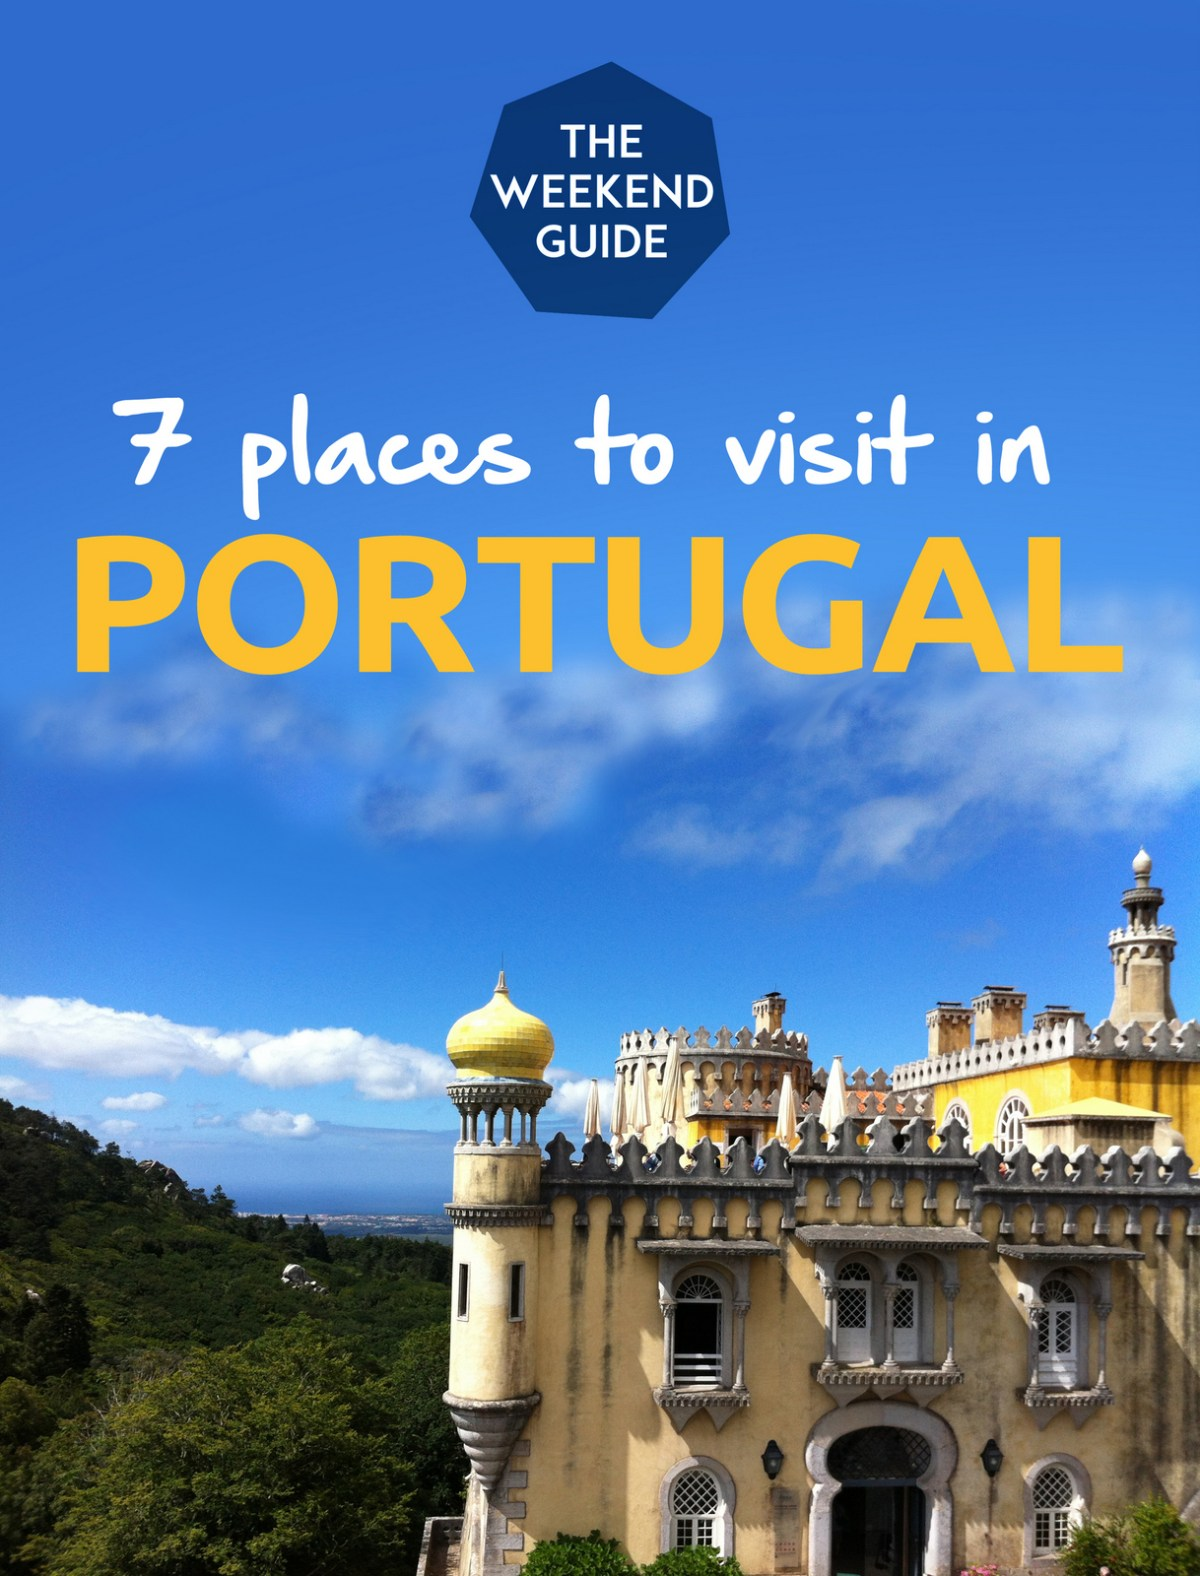 Portugal is full of fascinating cities, charming towns and beautiful vistas. Here are seven spots you should visit in Portugal to inspire your next holiday!